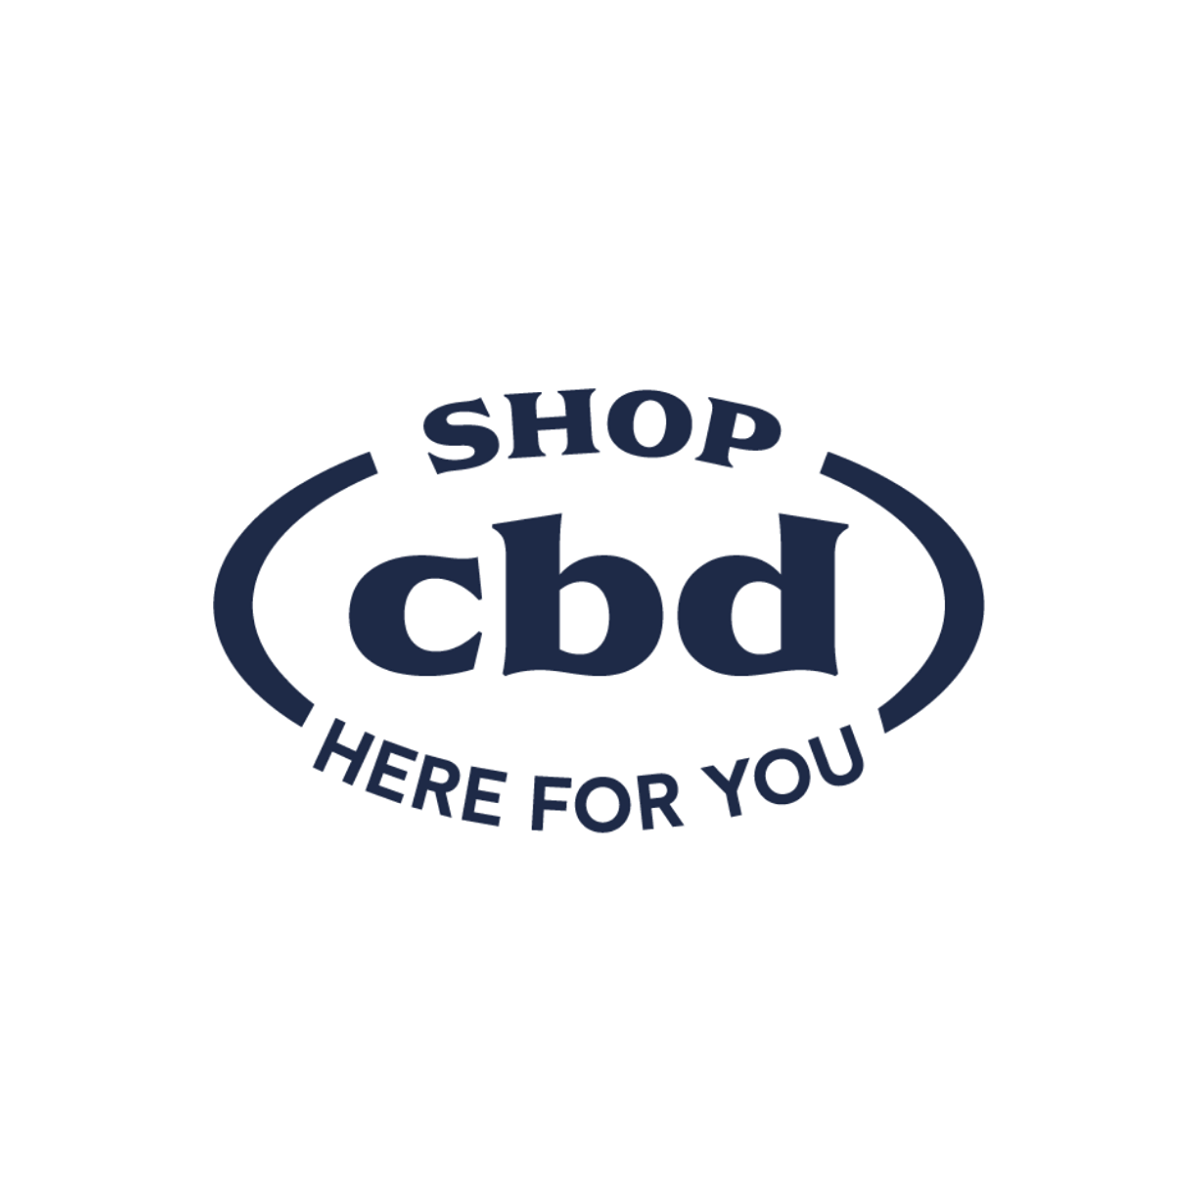 ShopCBD: The Gift of Wellness